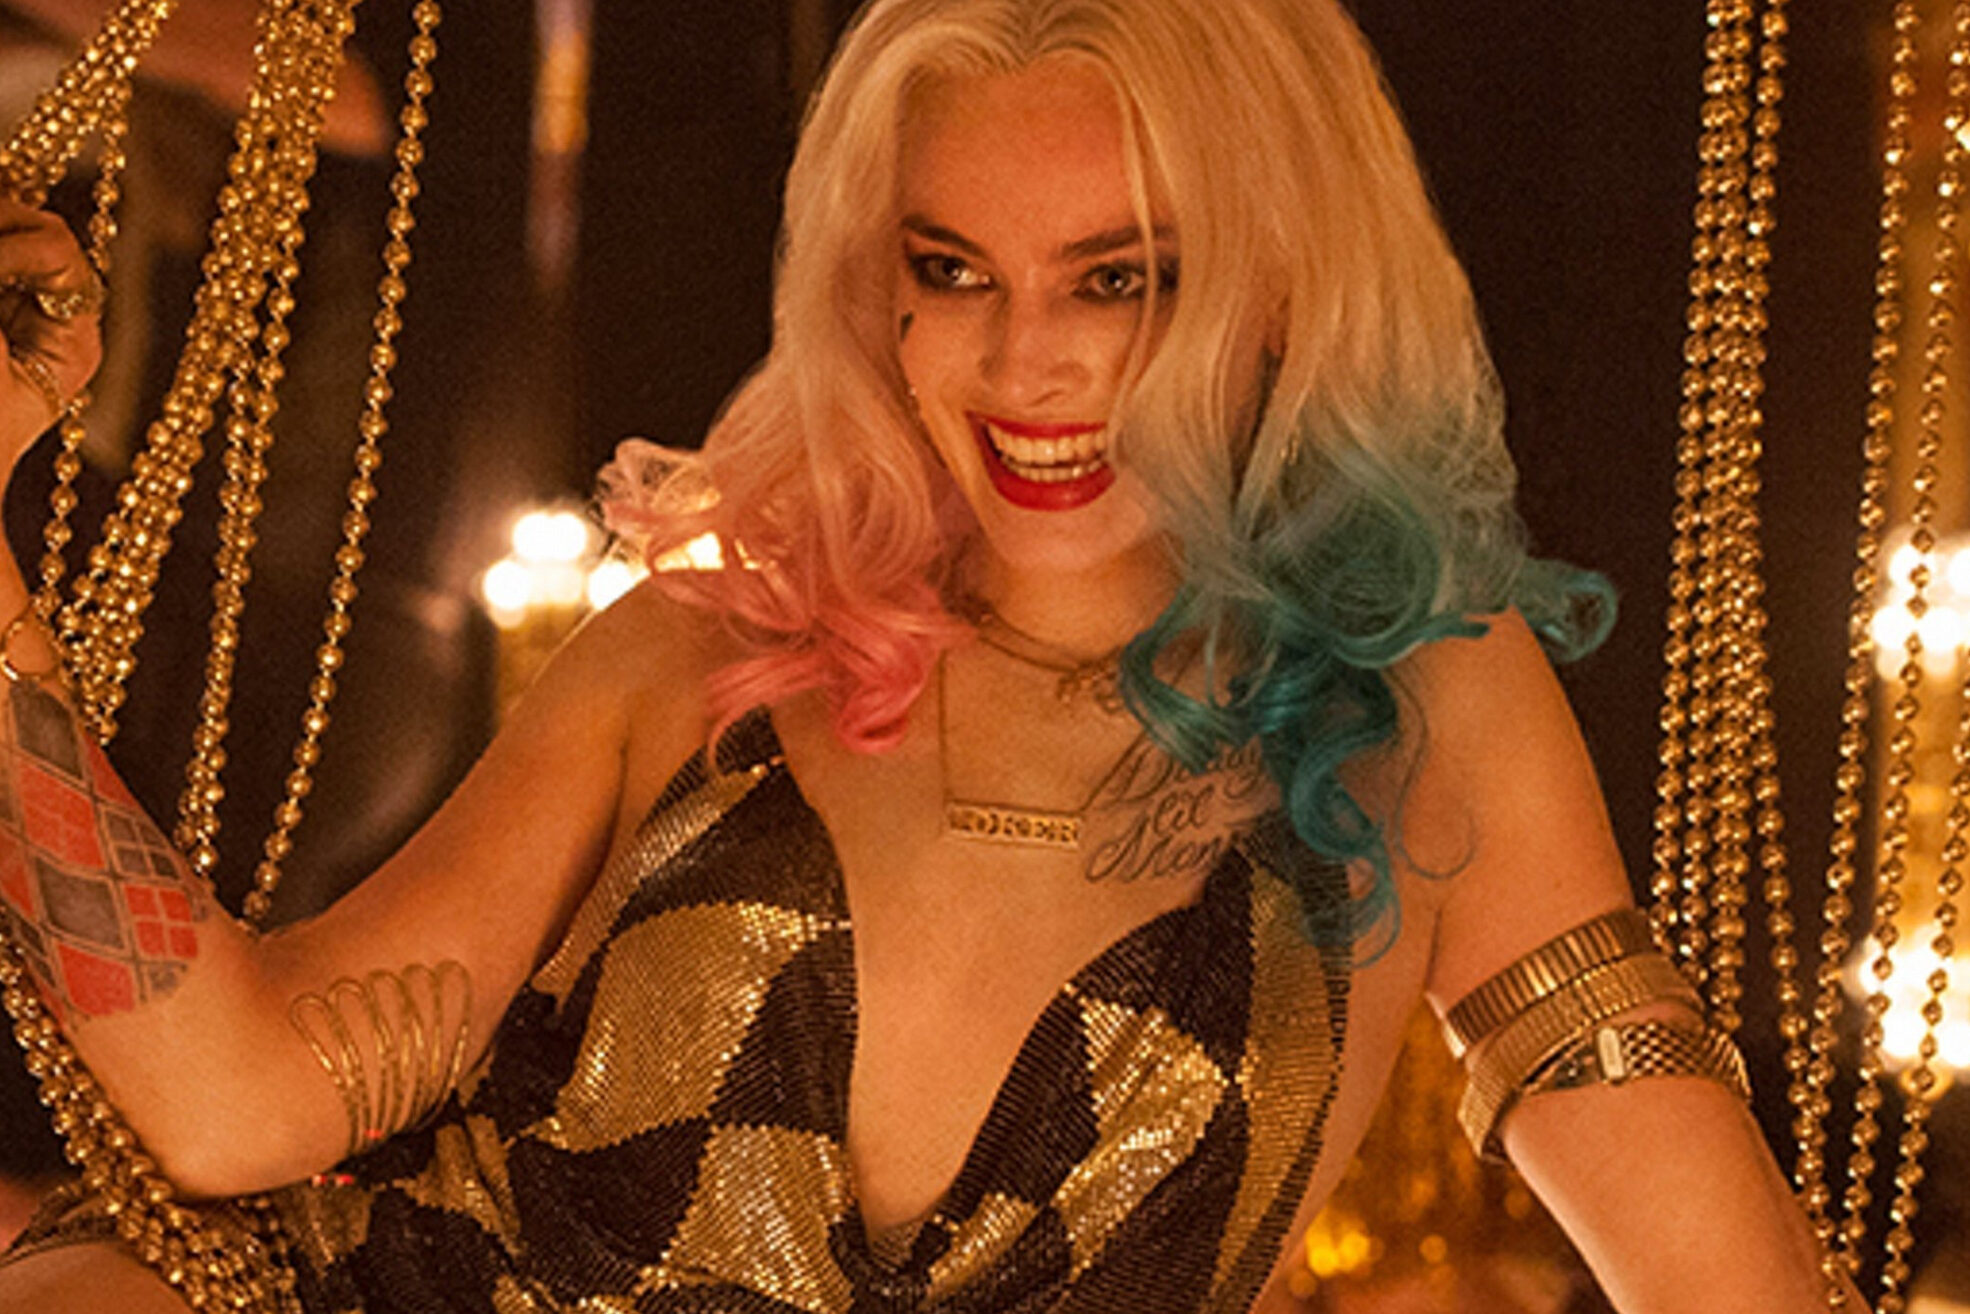 Margot Robbie Confirms A Pirates Of The Caribbean Movie Could Be Her Future